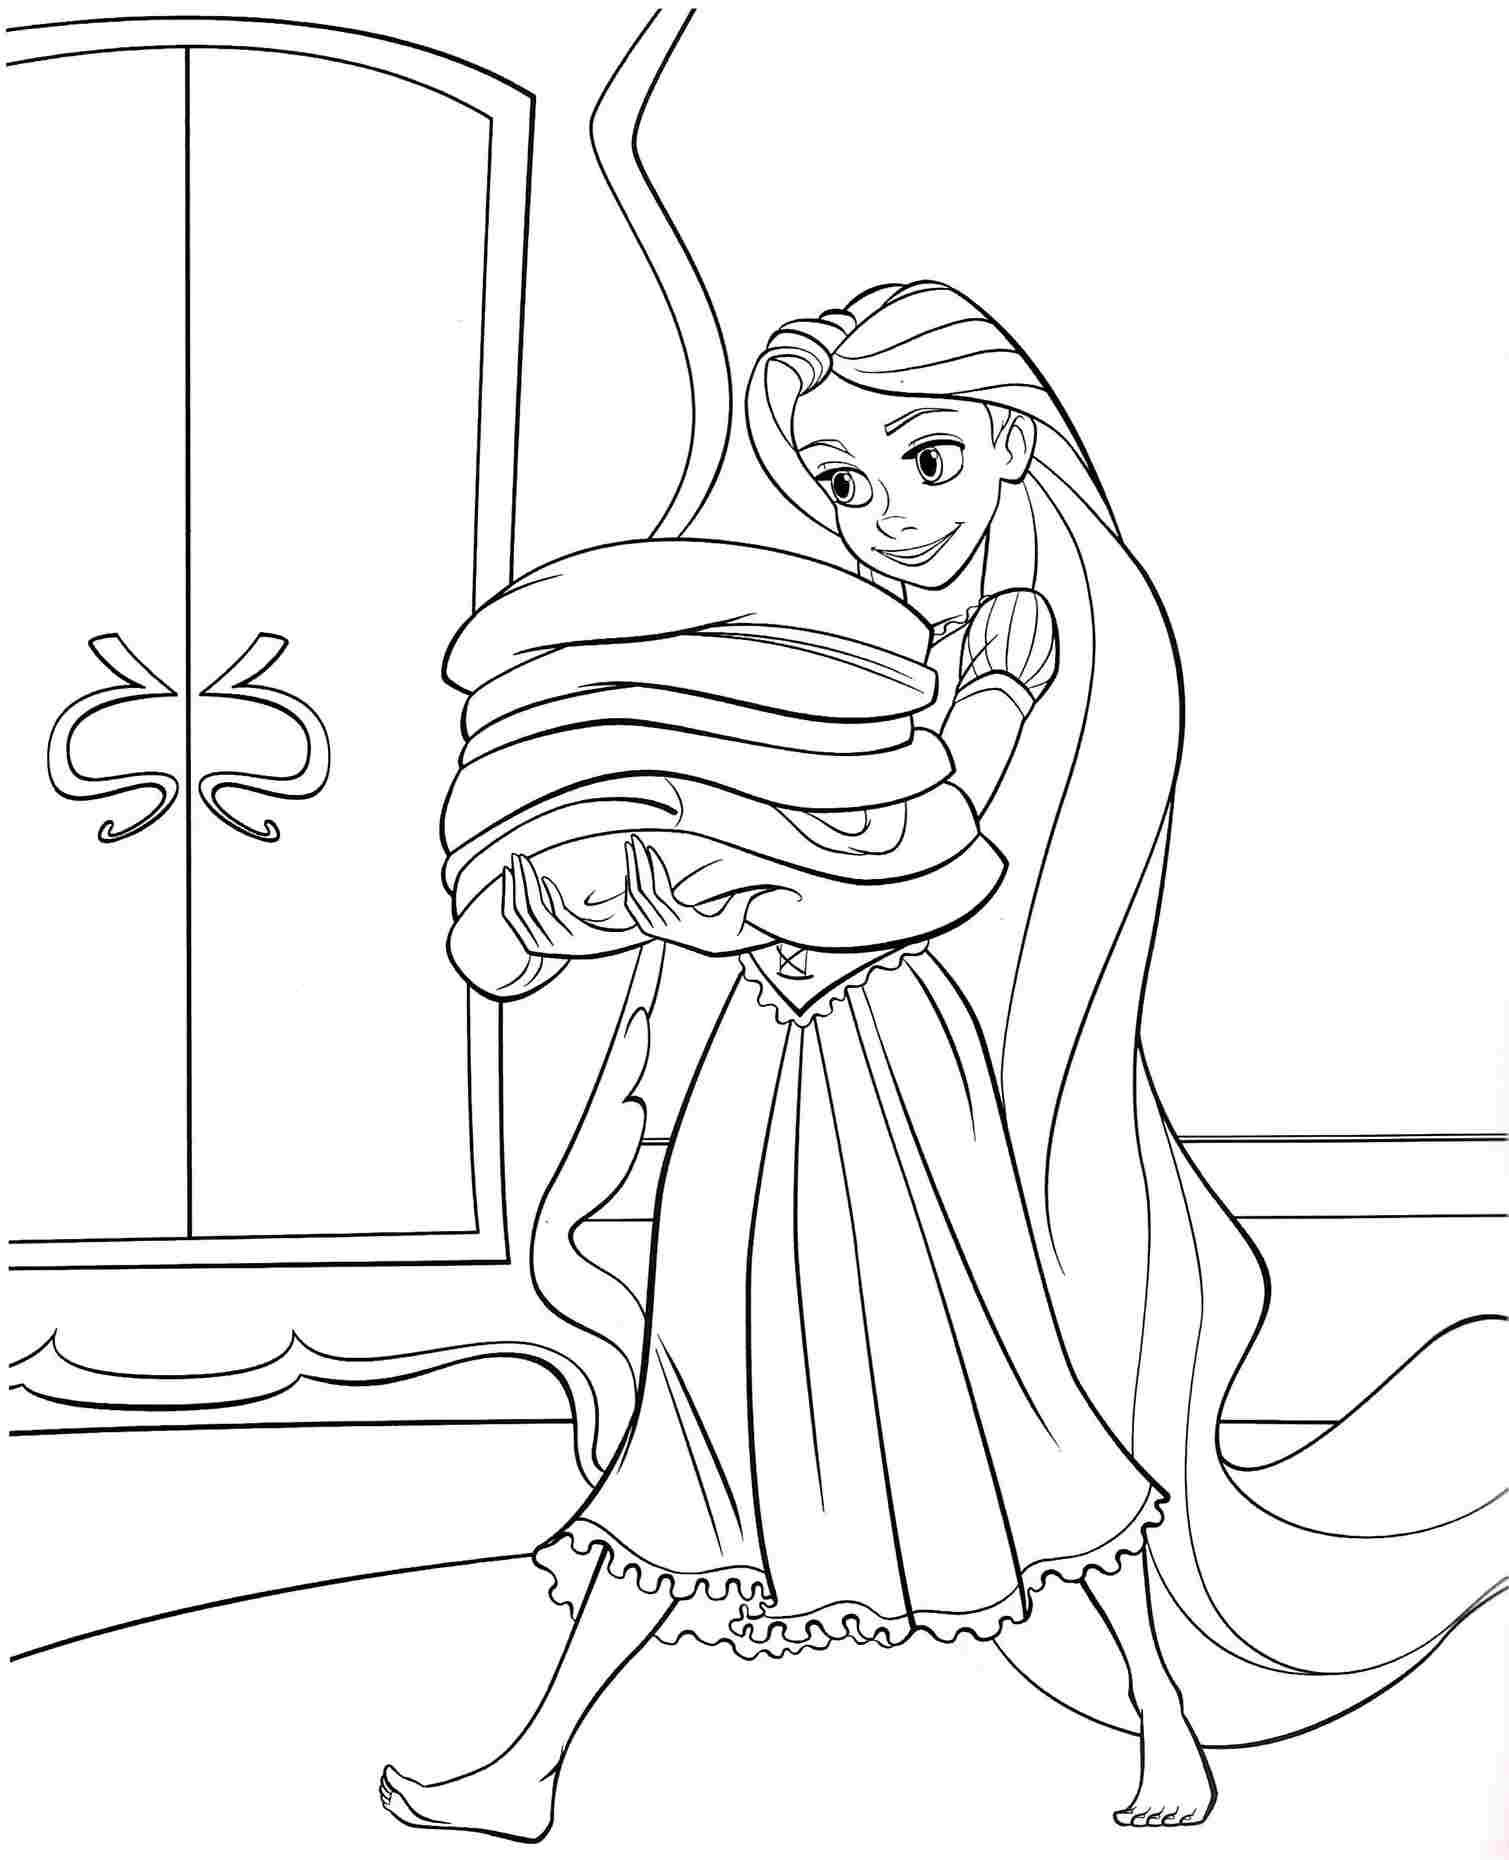 Coloring Pages Disney Princess Tangled Rapunzel Free For